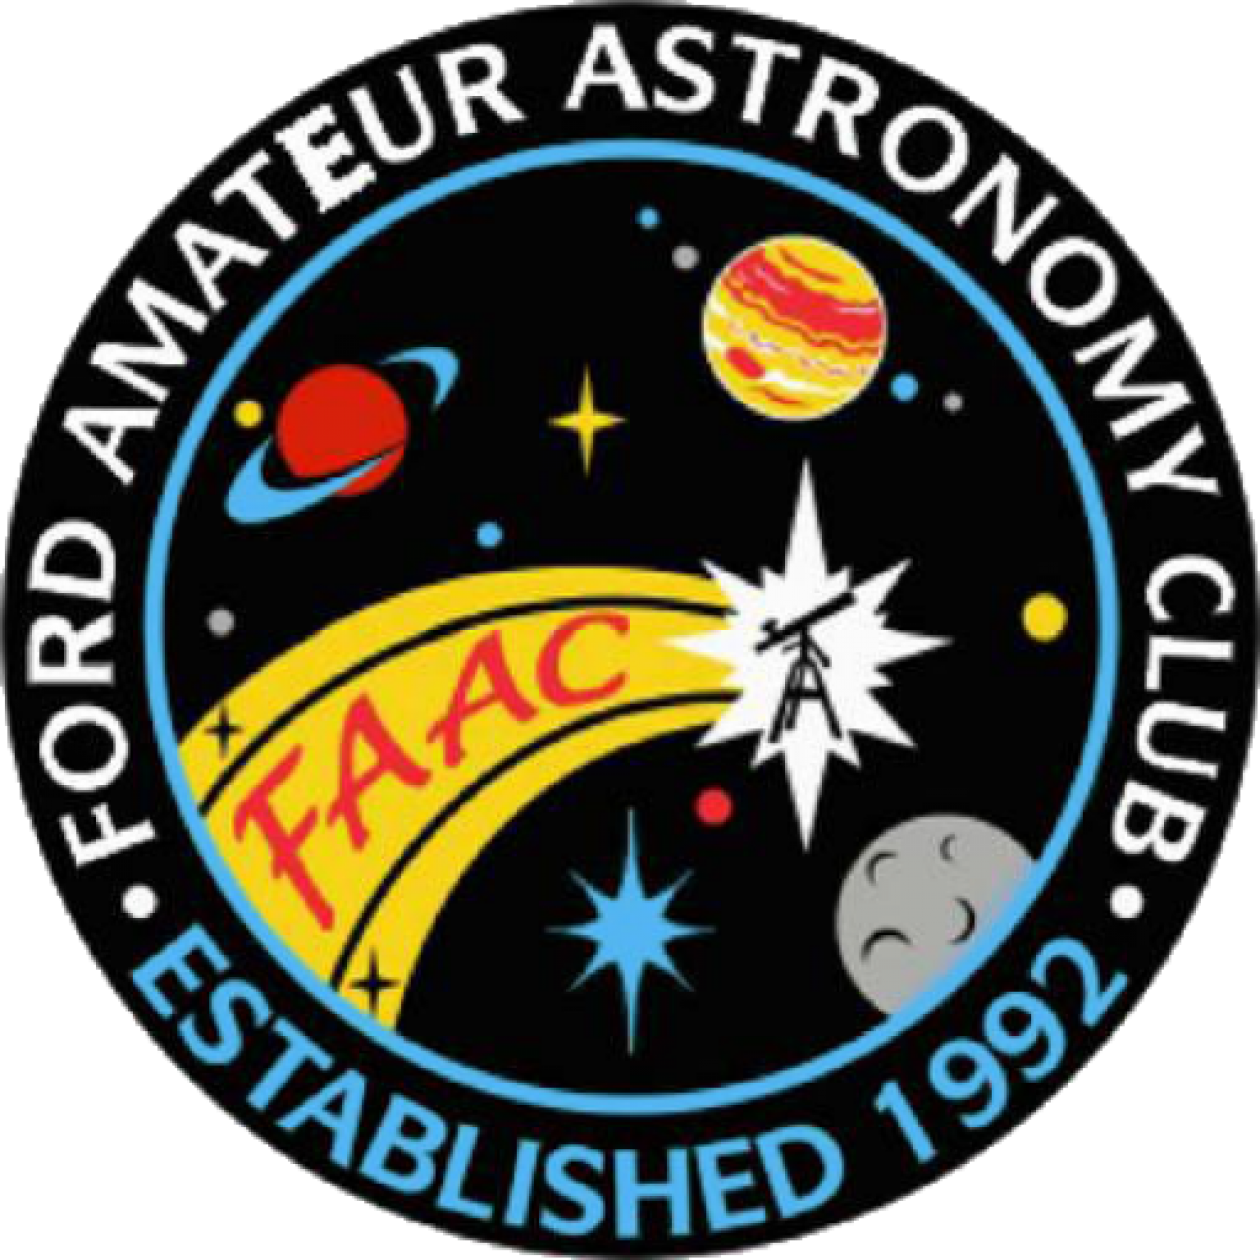 Ford Amateur Astronomy Club